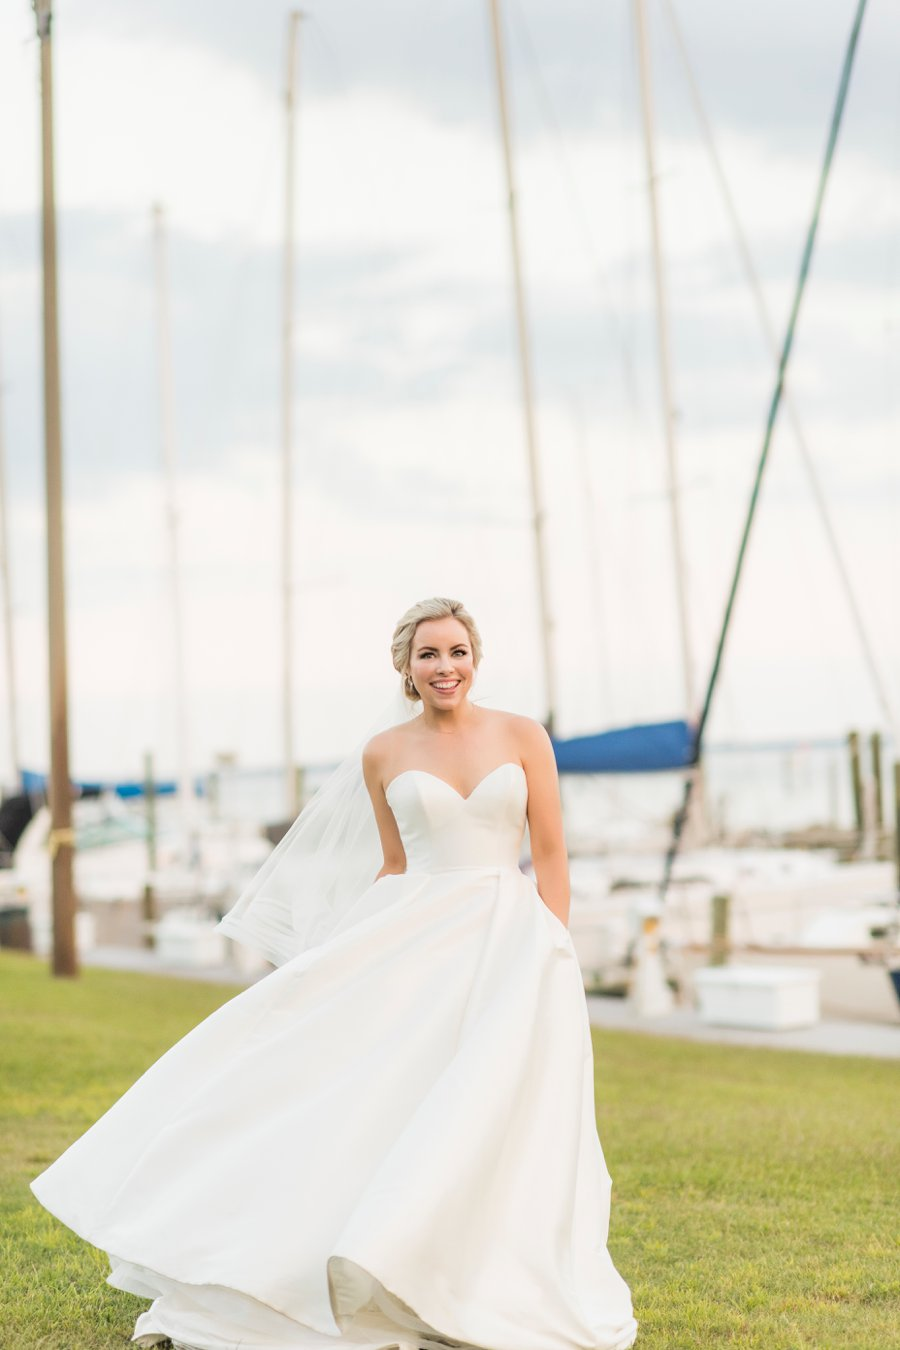 A Preppy, Classic Navy & White Nautical Wedding | Every Last Detail